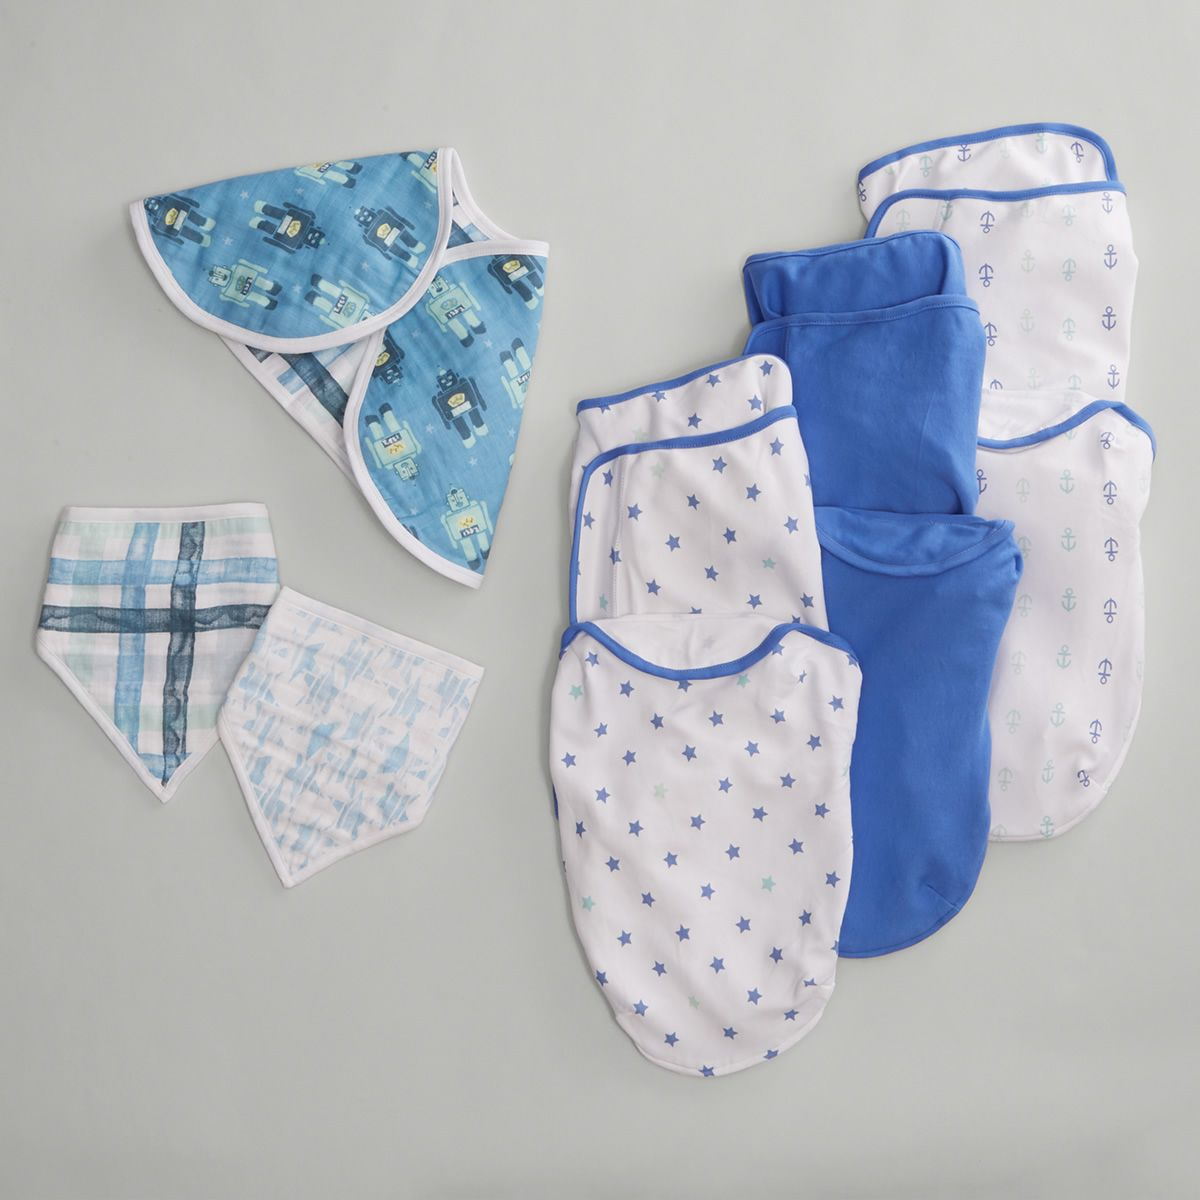 Bibs, Burp Cloths and More